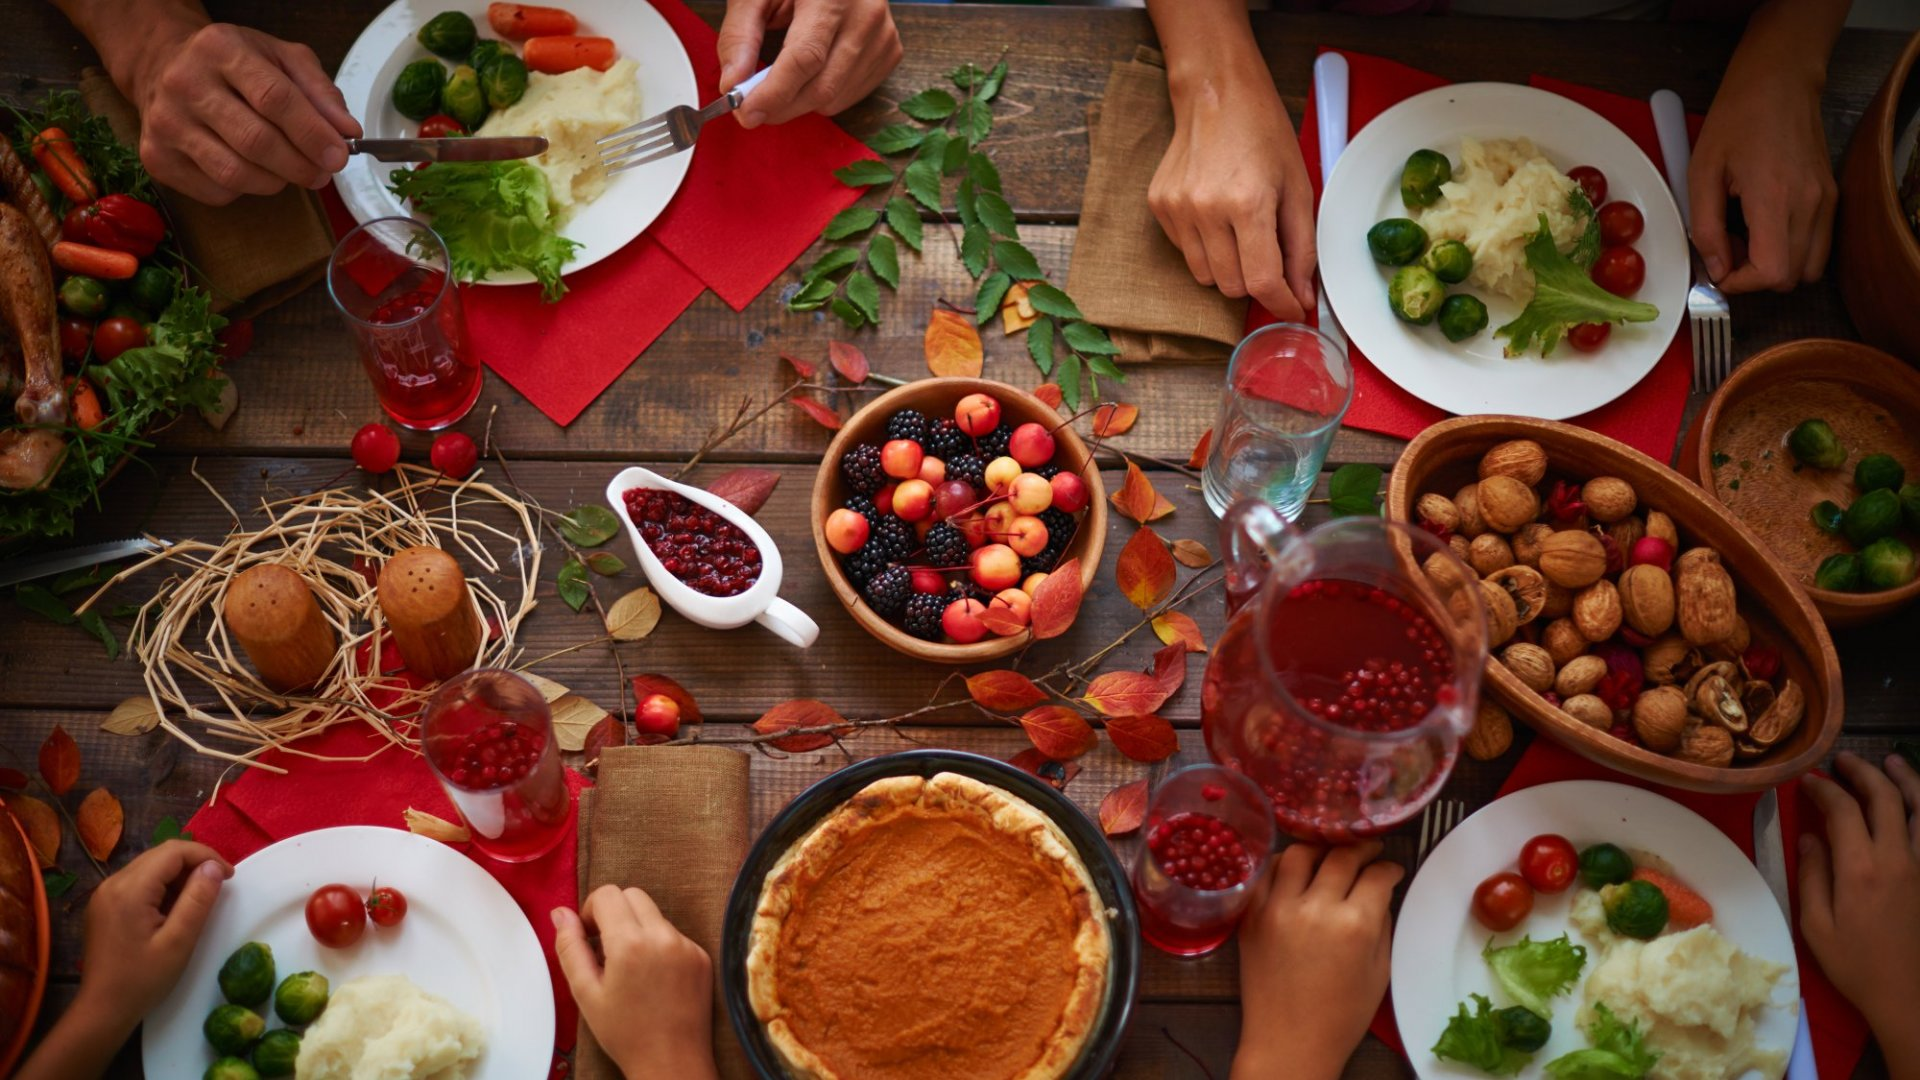 9 Ways You Can Still Be Productive During Thanksgiving (Even With Family Around)